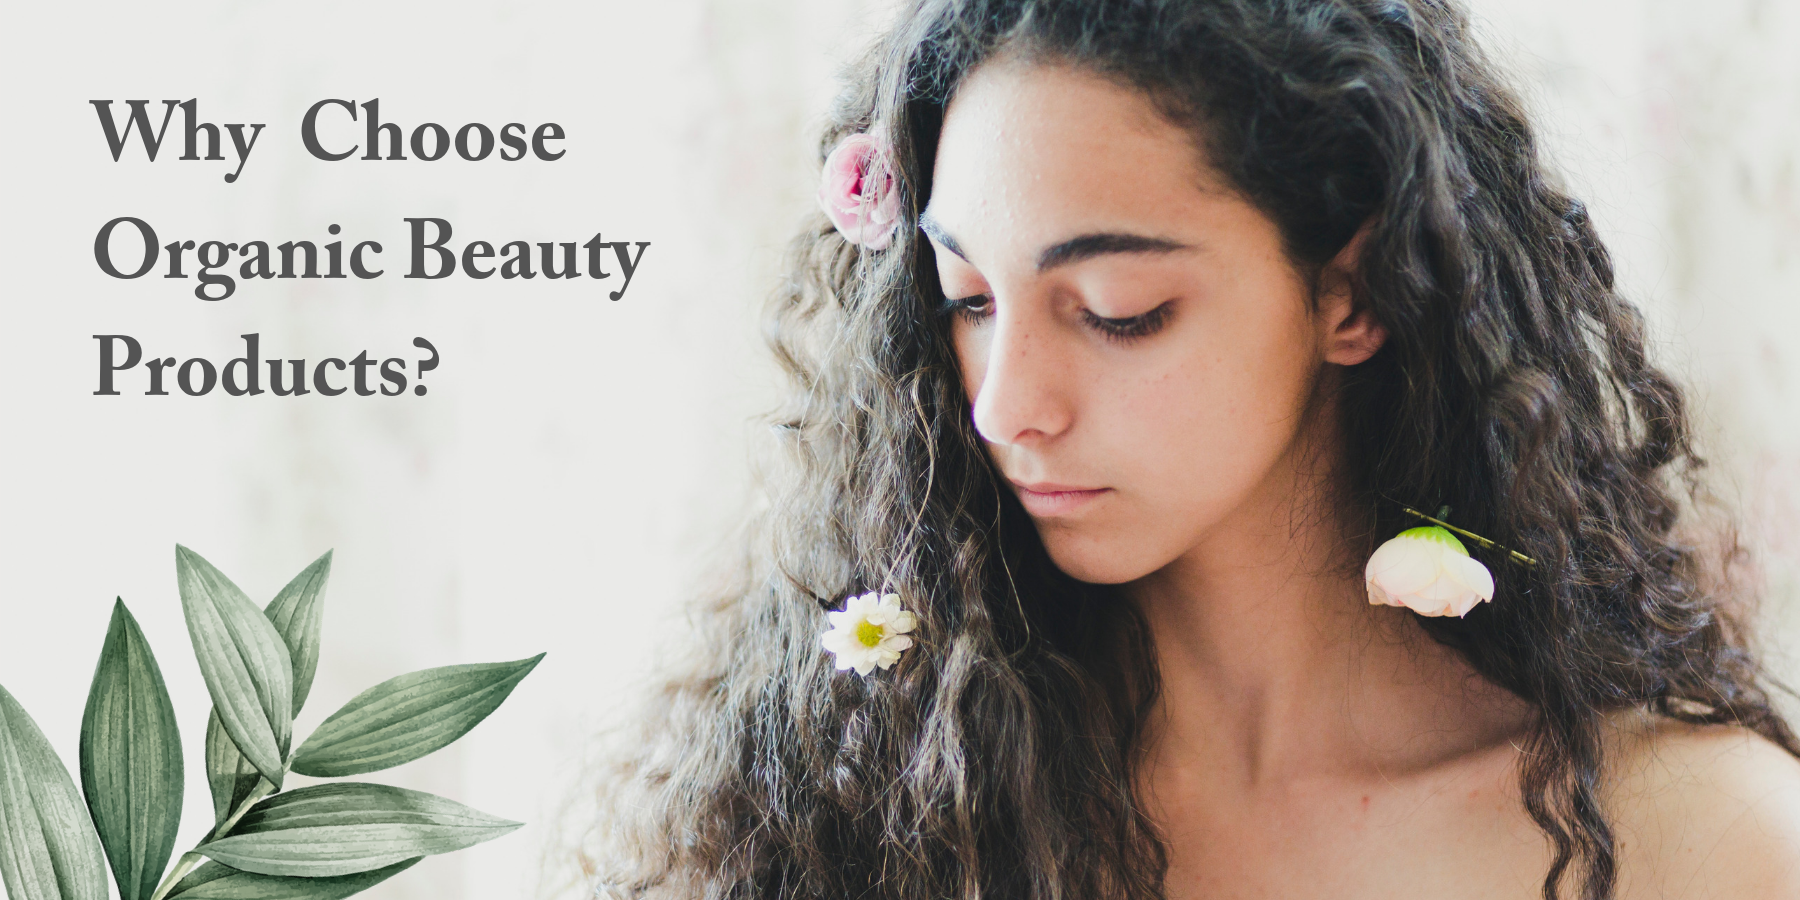 Why Choose to Organic Beauty Products?